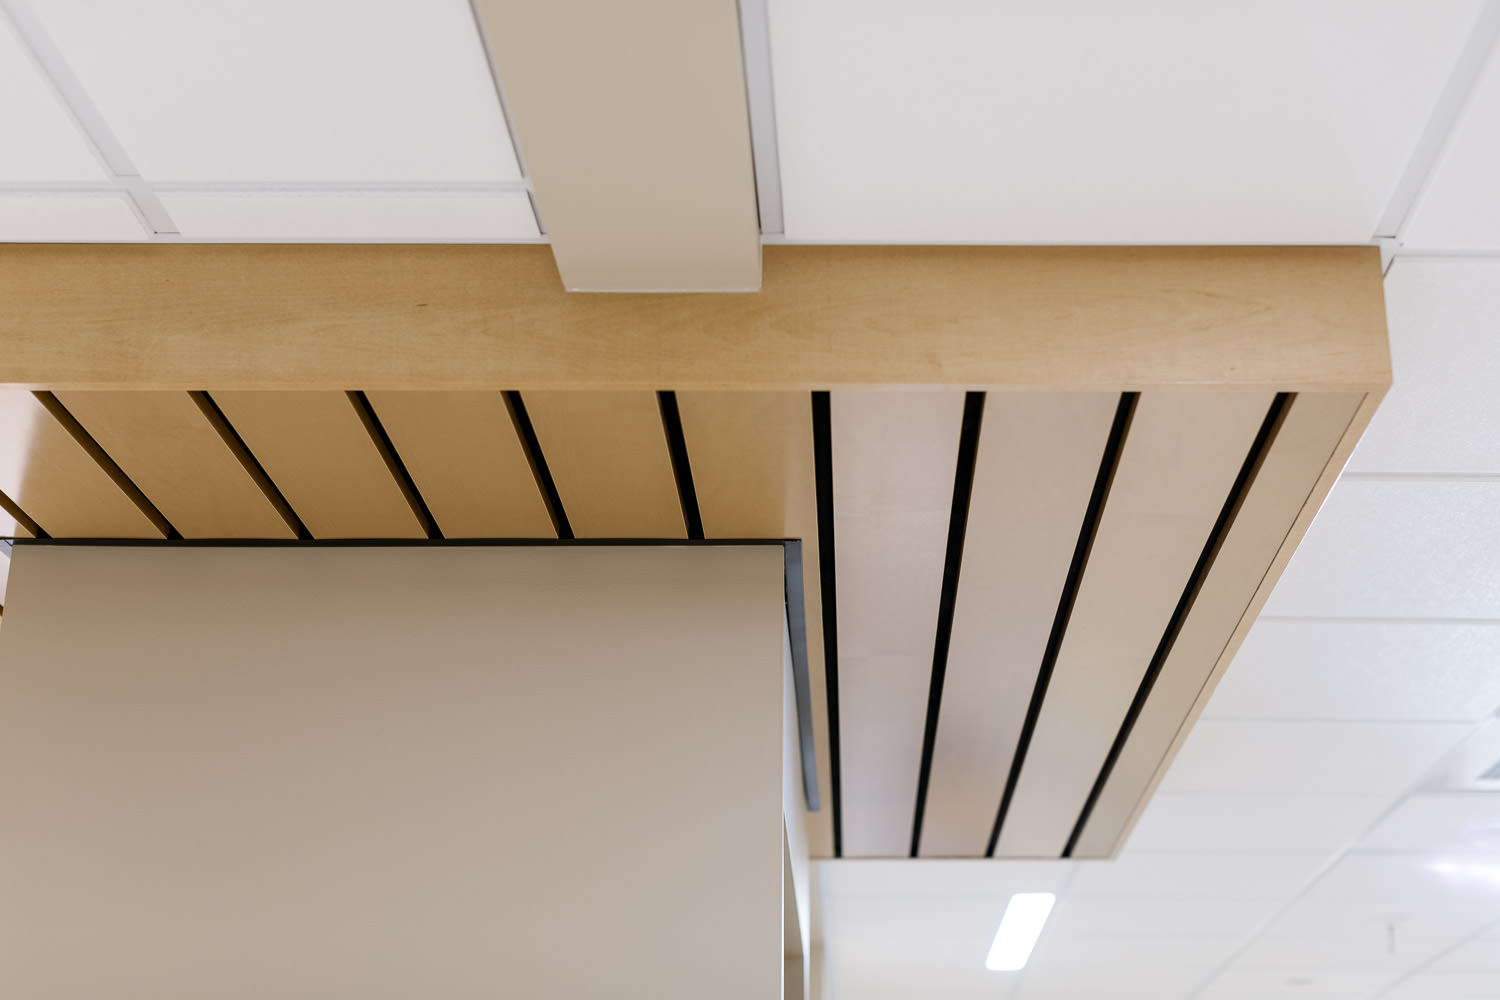 Detail photo of a ceiling wood bumpout in Northwestern Medical Center's Inpatient Progressive Care Unit in St. Albans Vermont constructed in 2017 photographed by Stina Booth of Studio SB.